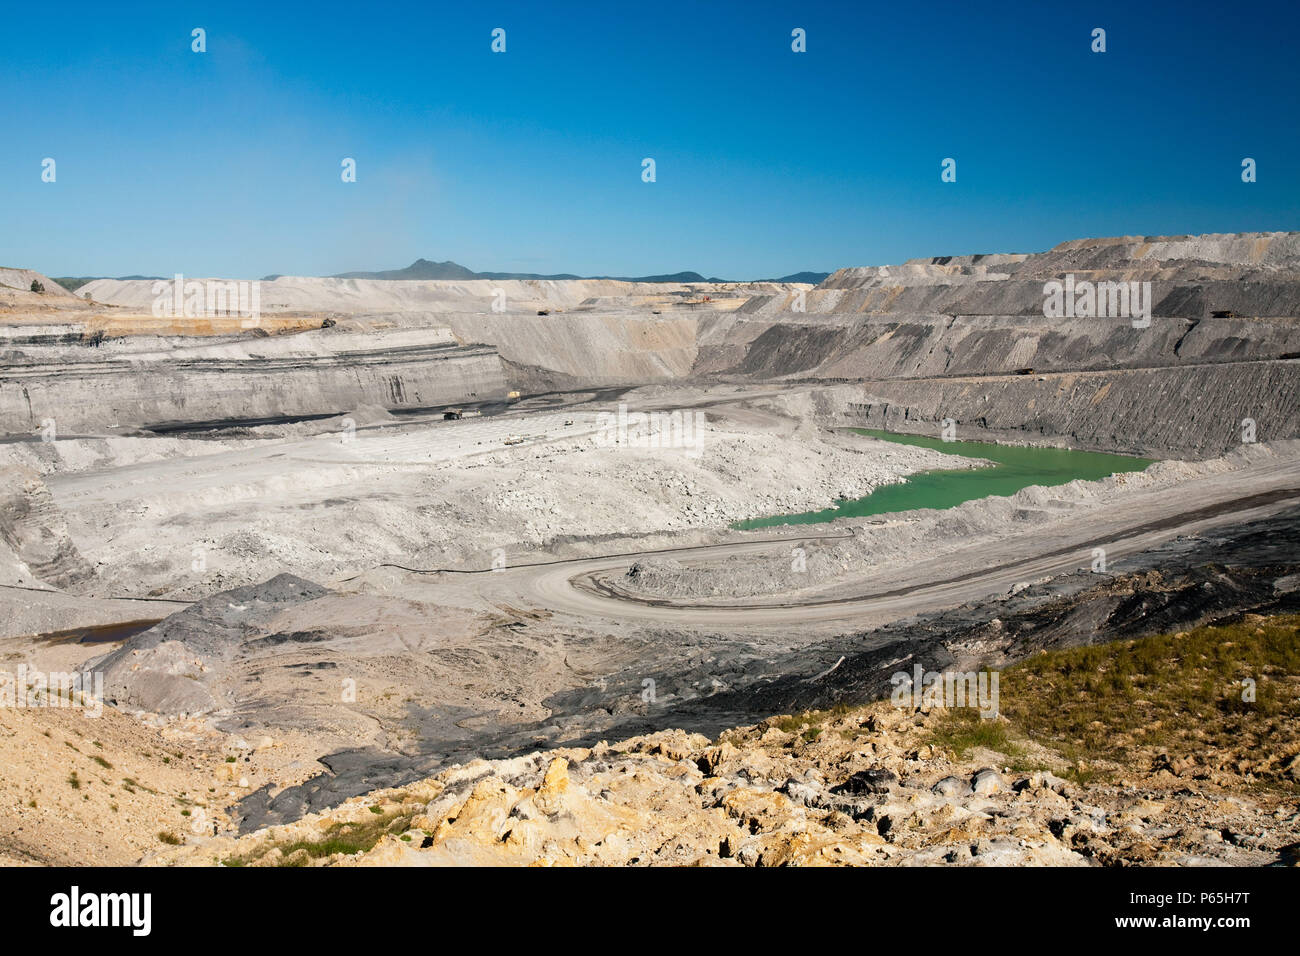 An open cast or drift coal mine managed by Xstrata coal in the Hunter Valley, New South Wales. If we are serious about tackling climate change, coal,  - Stock Image